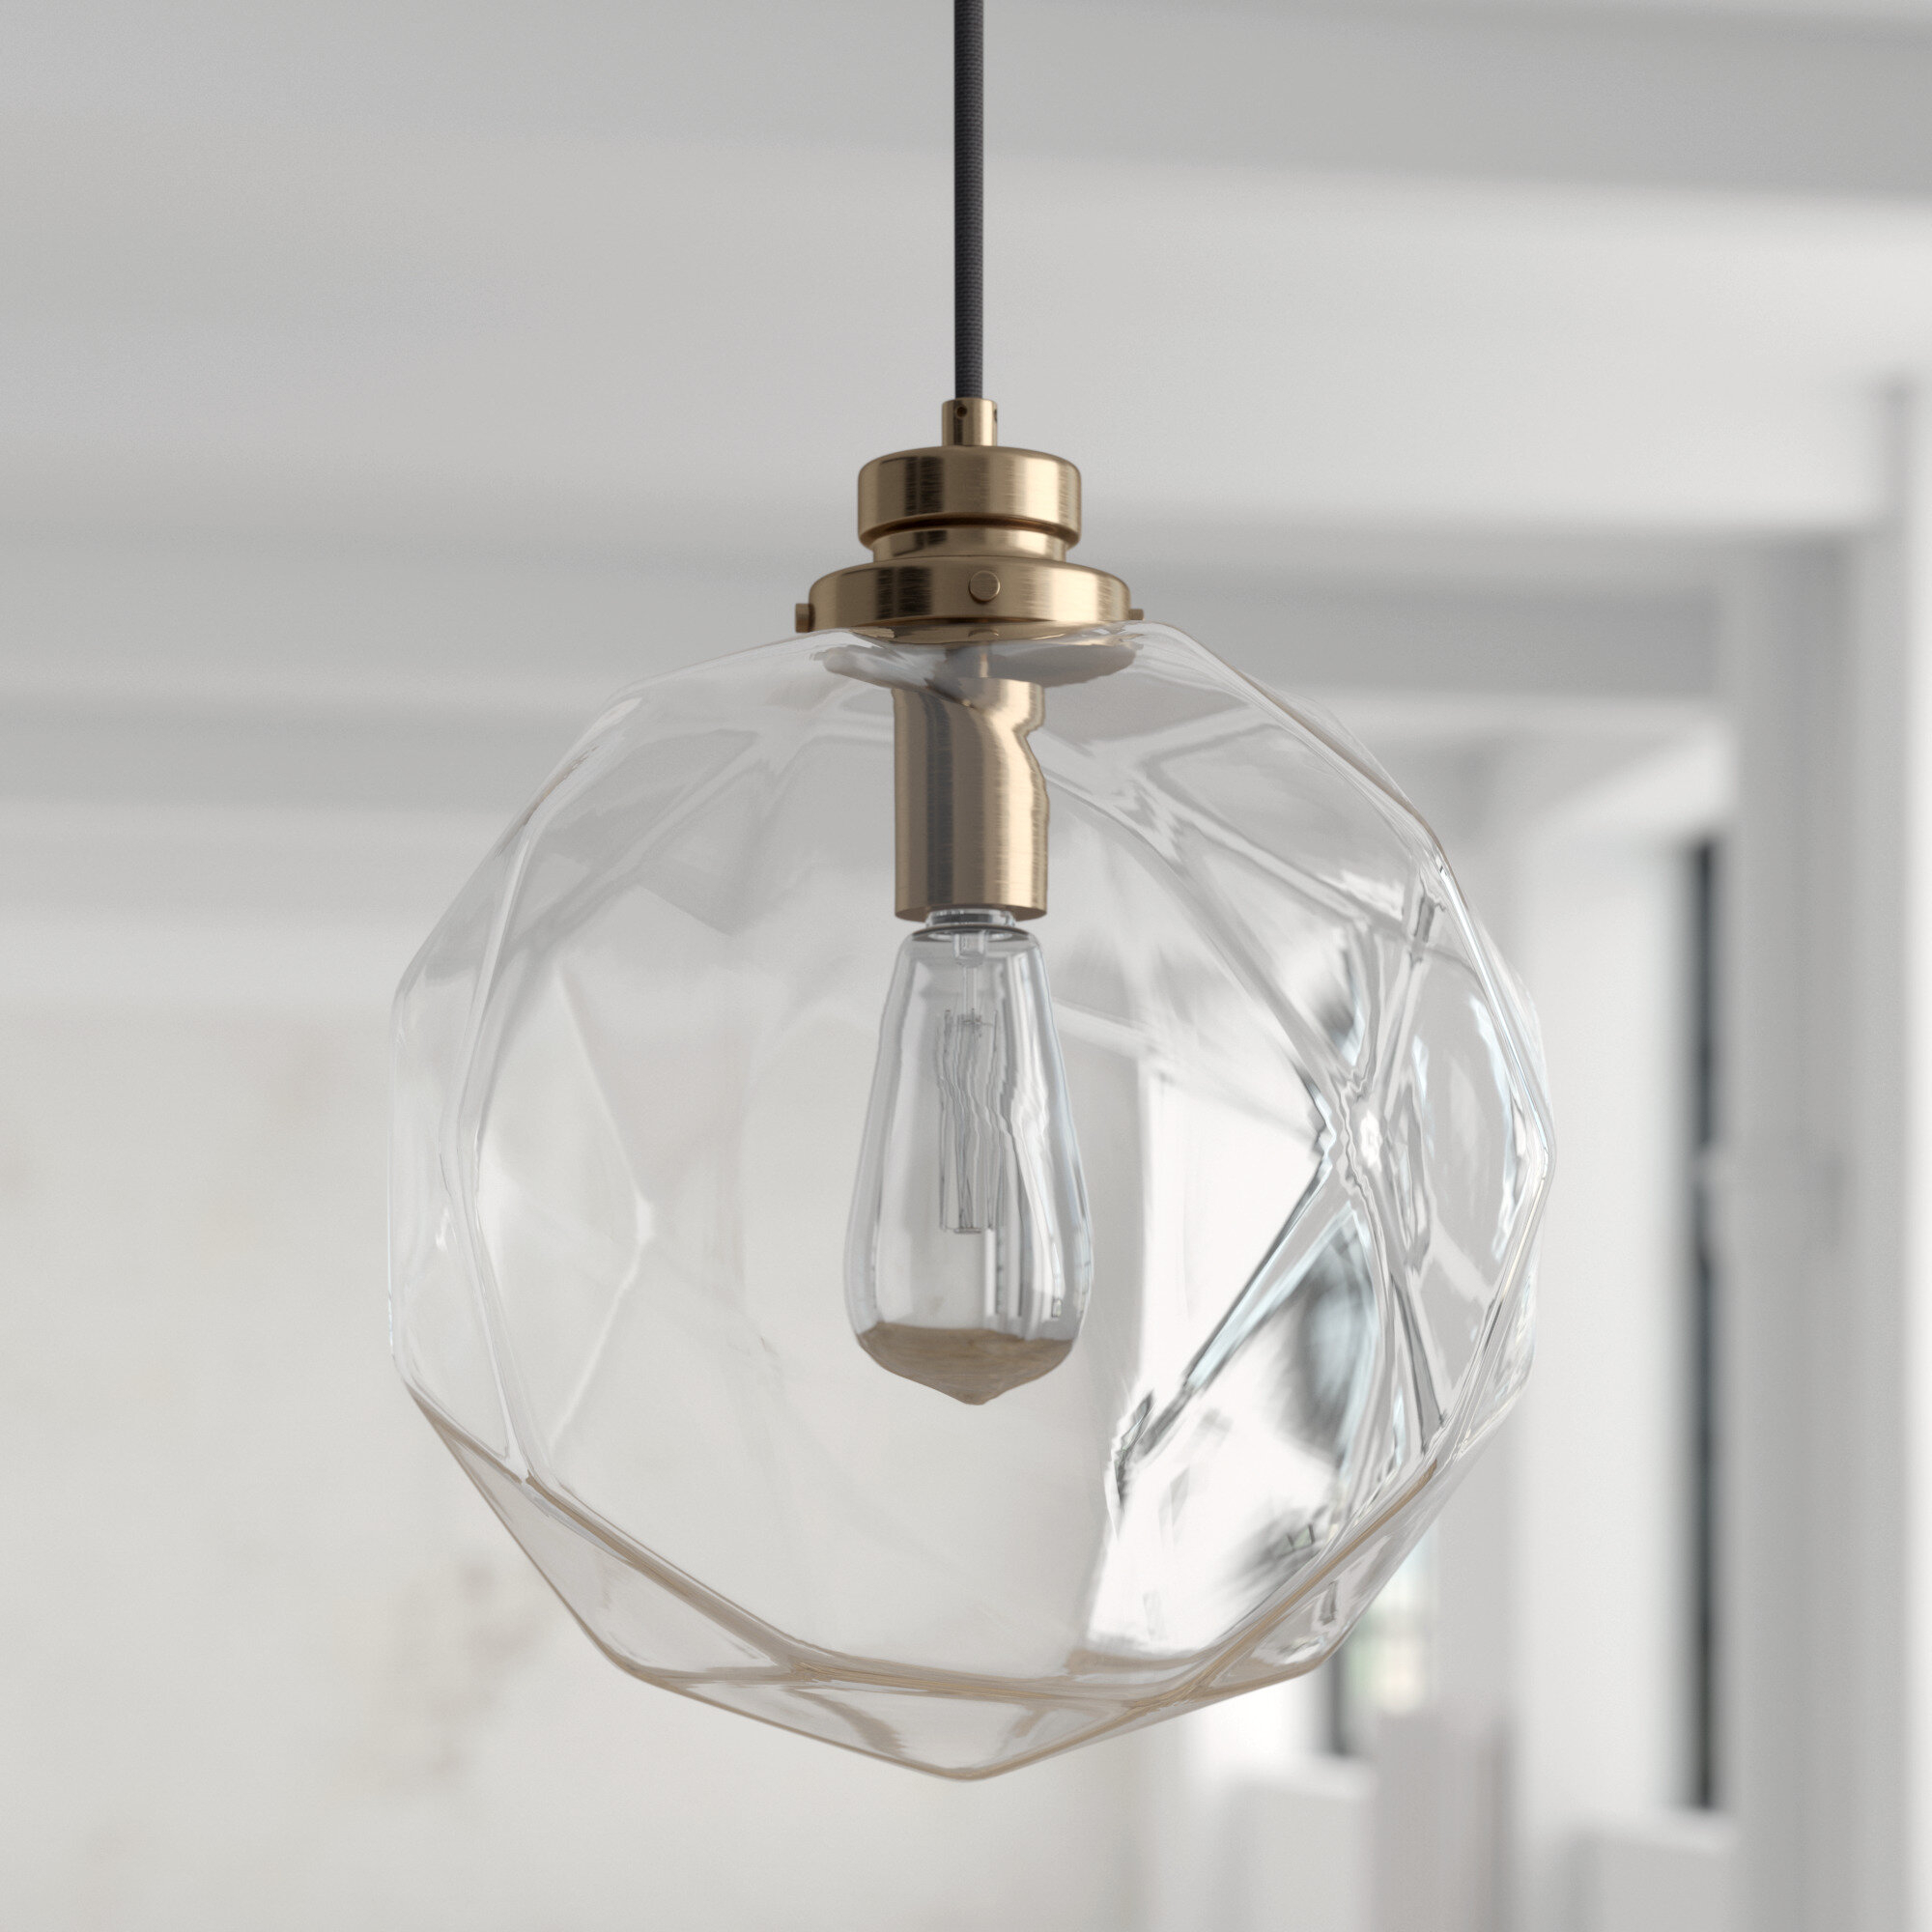 1 Light Geometric Globe Pendant Throughout Roslindale 1 Light Single Bell Pendants (Gallery 19 of 30)